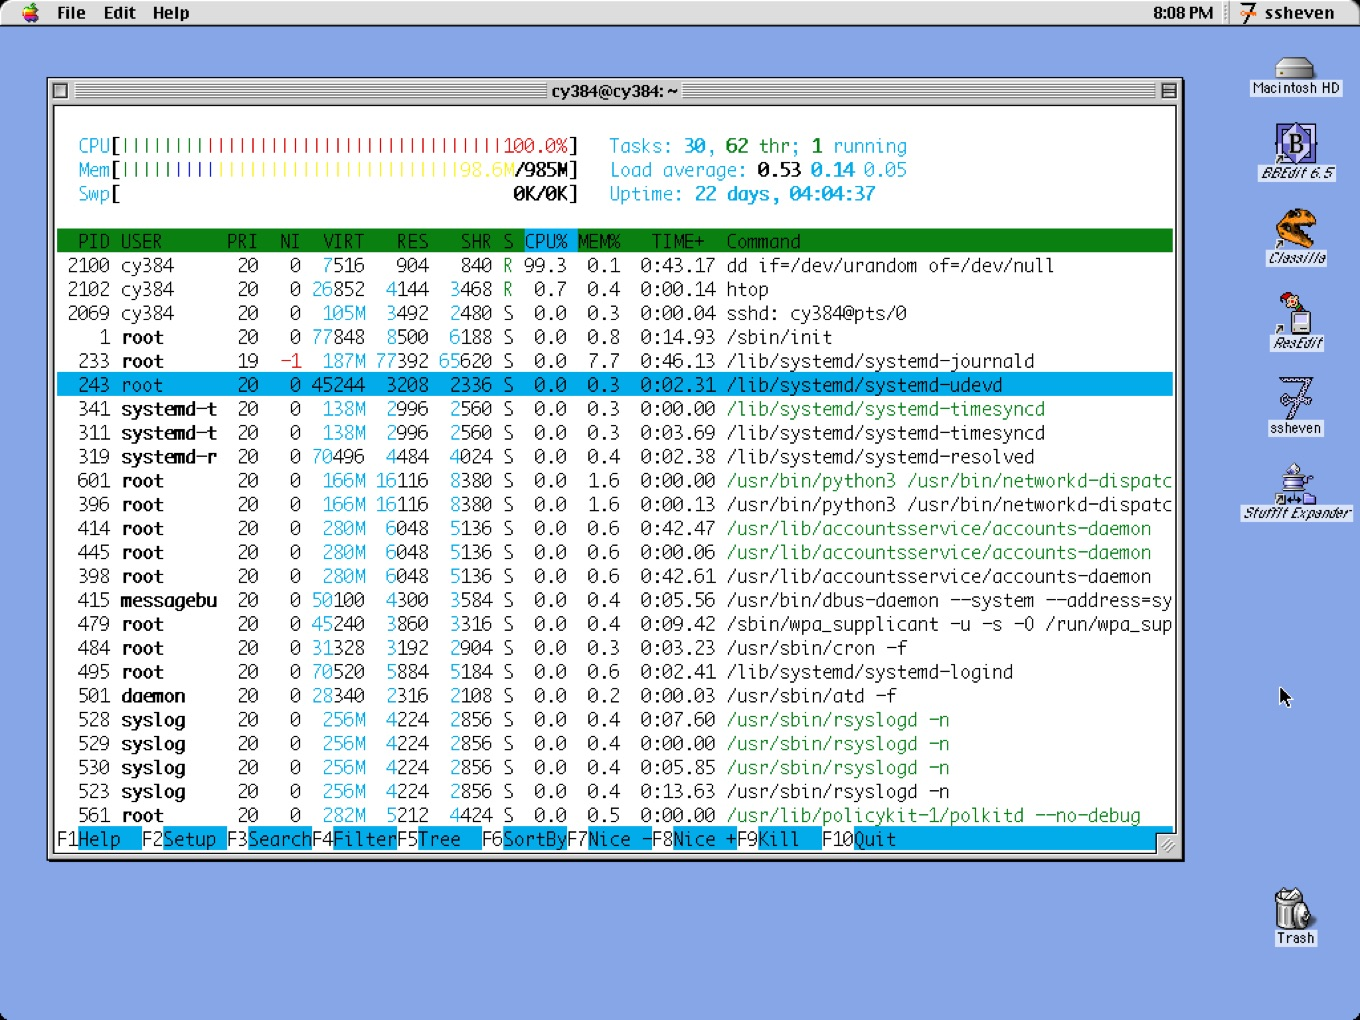 ssheven for system 7-9 ssh client